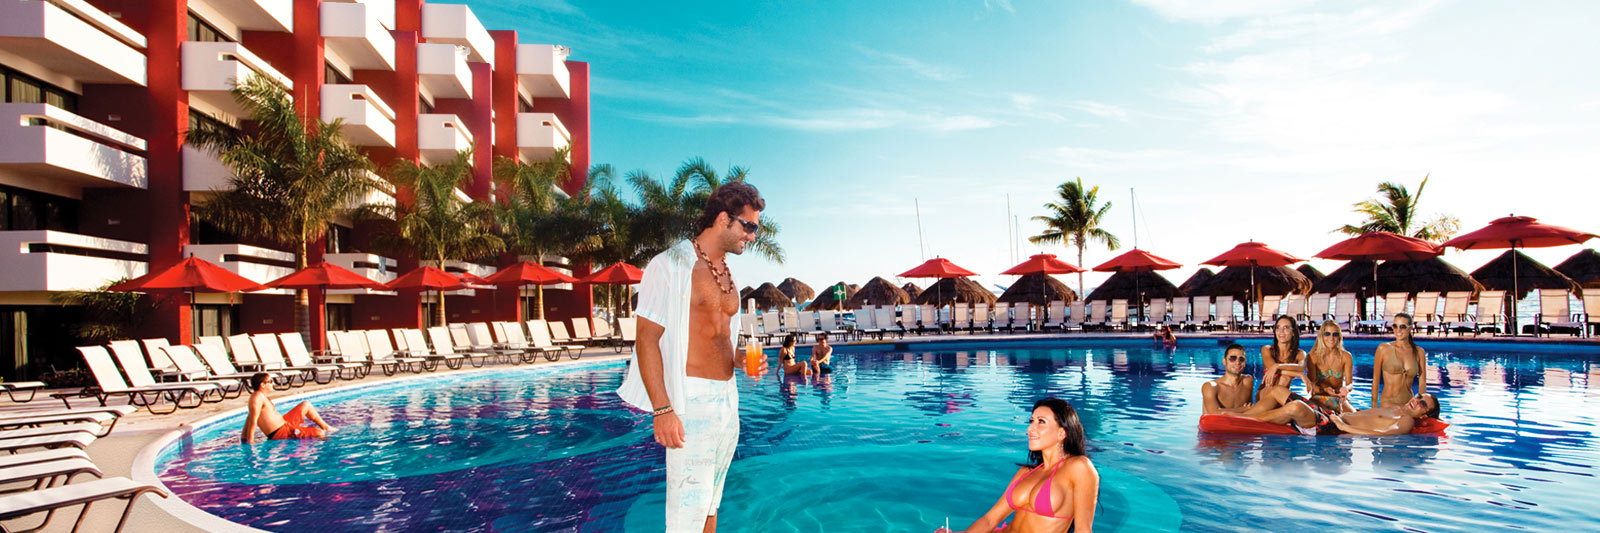 All inclusive cancun sex vacations